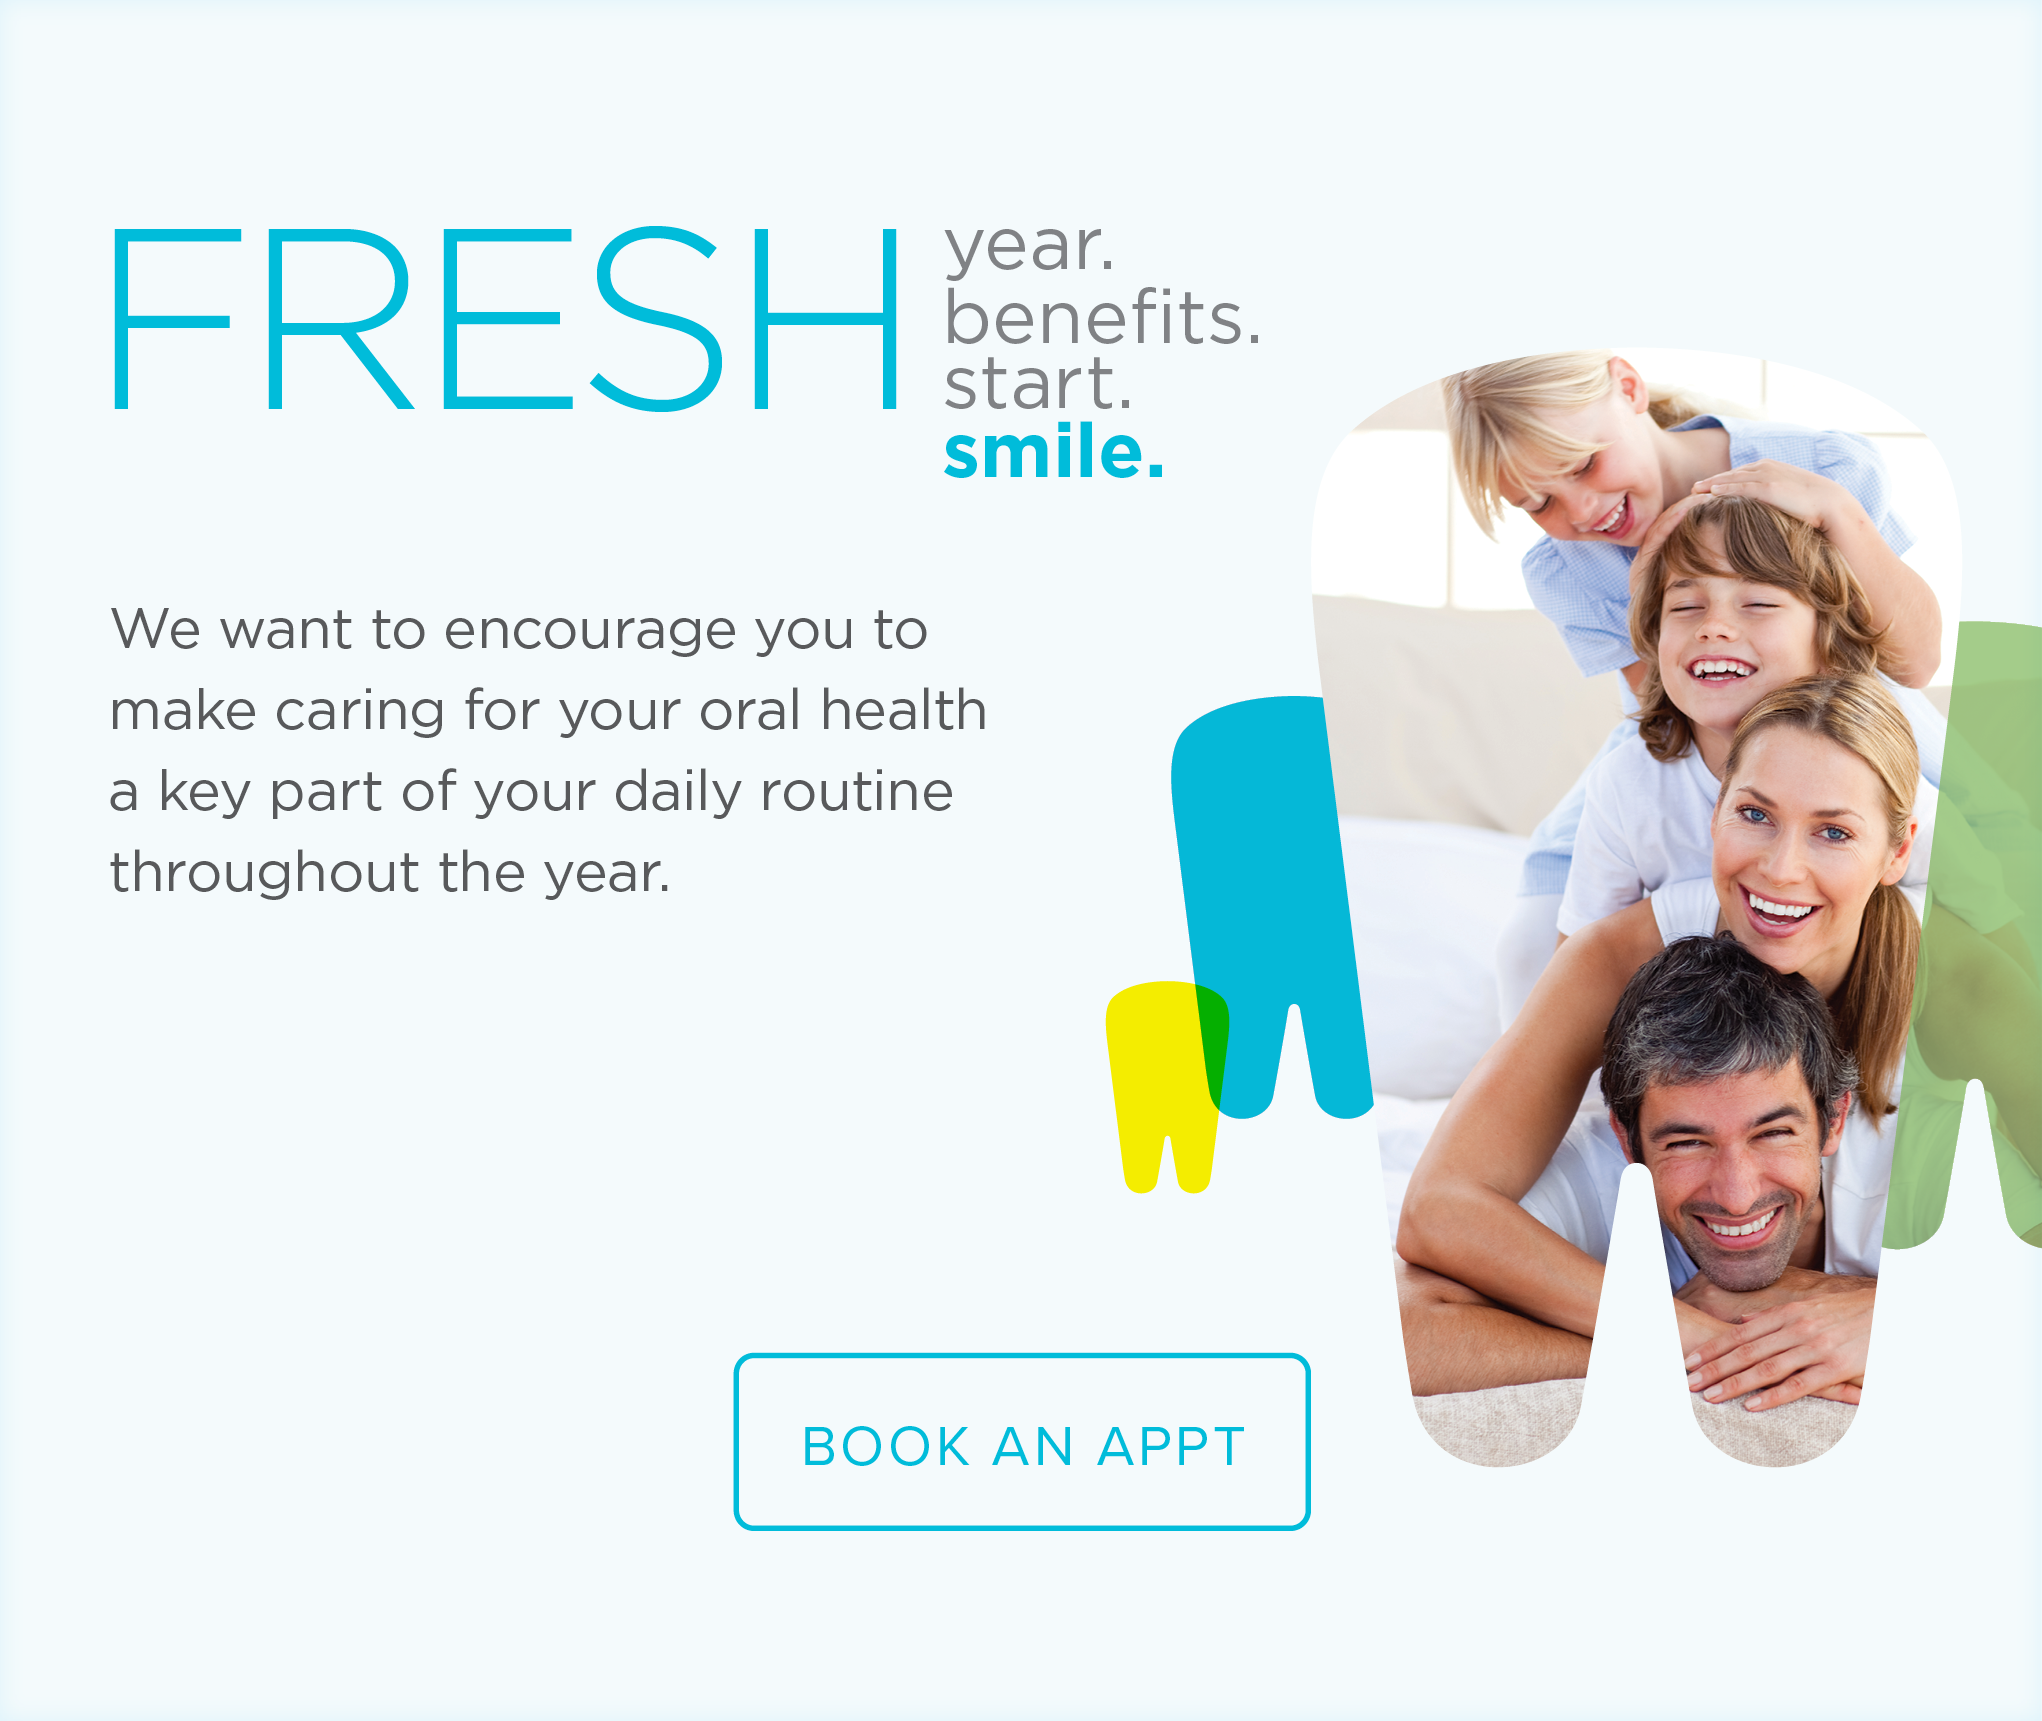 NE Heights Modern Dentistry - Make the Most of Your Benefits